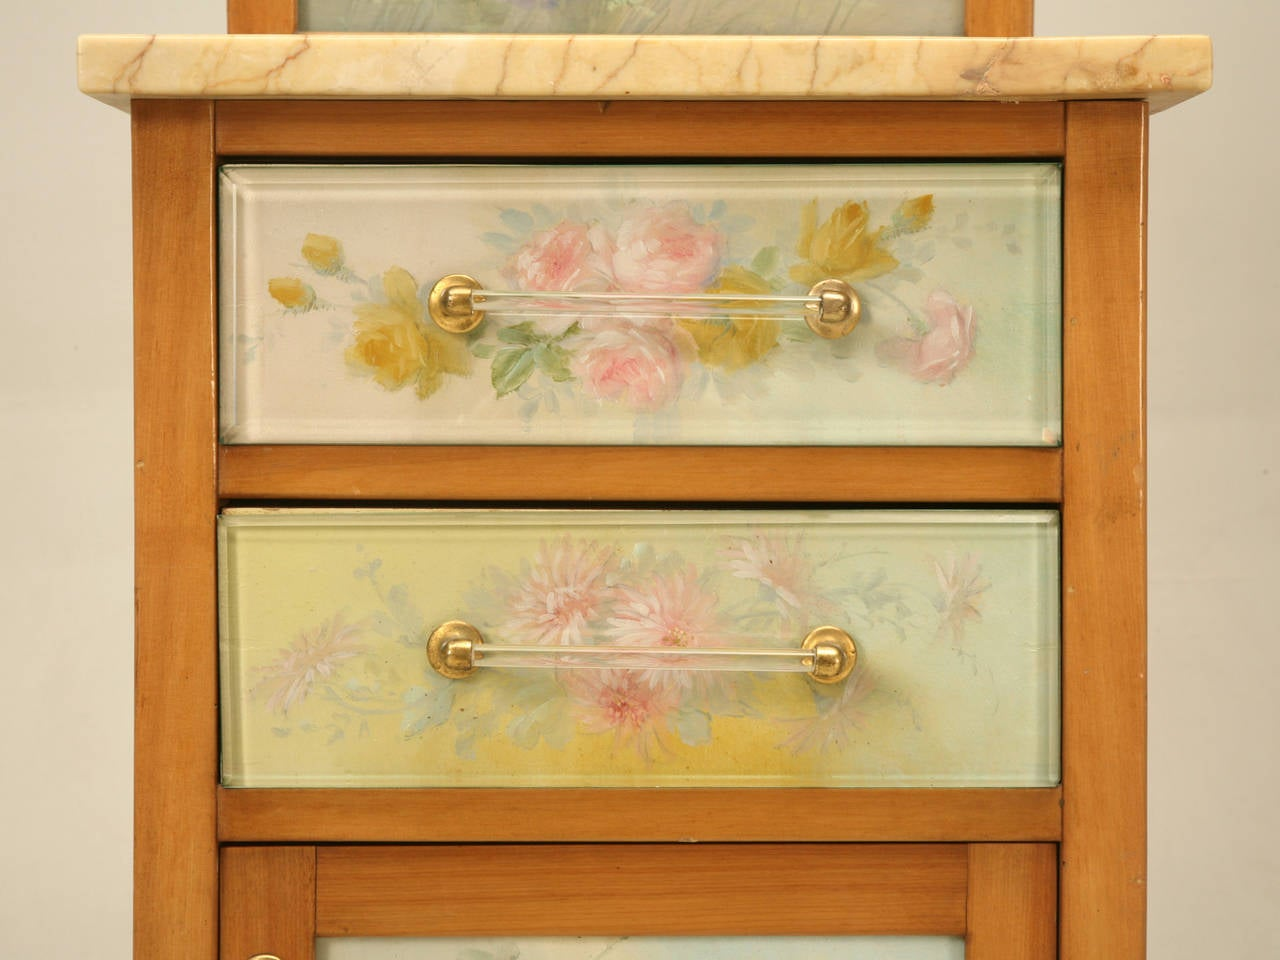 Spanish Bathroom, or Nightstand Cabinet with Paintings by Tolosa-Alsina For Sale 3